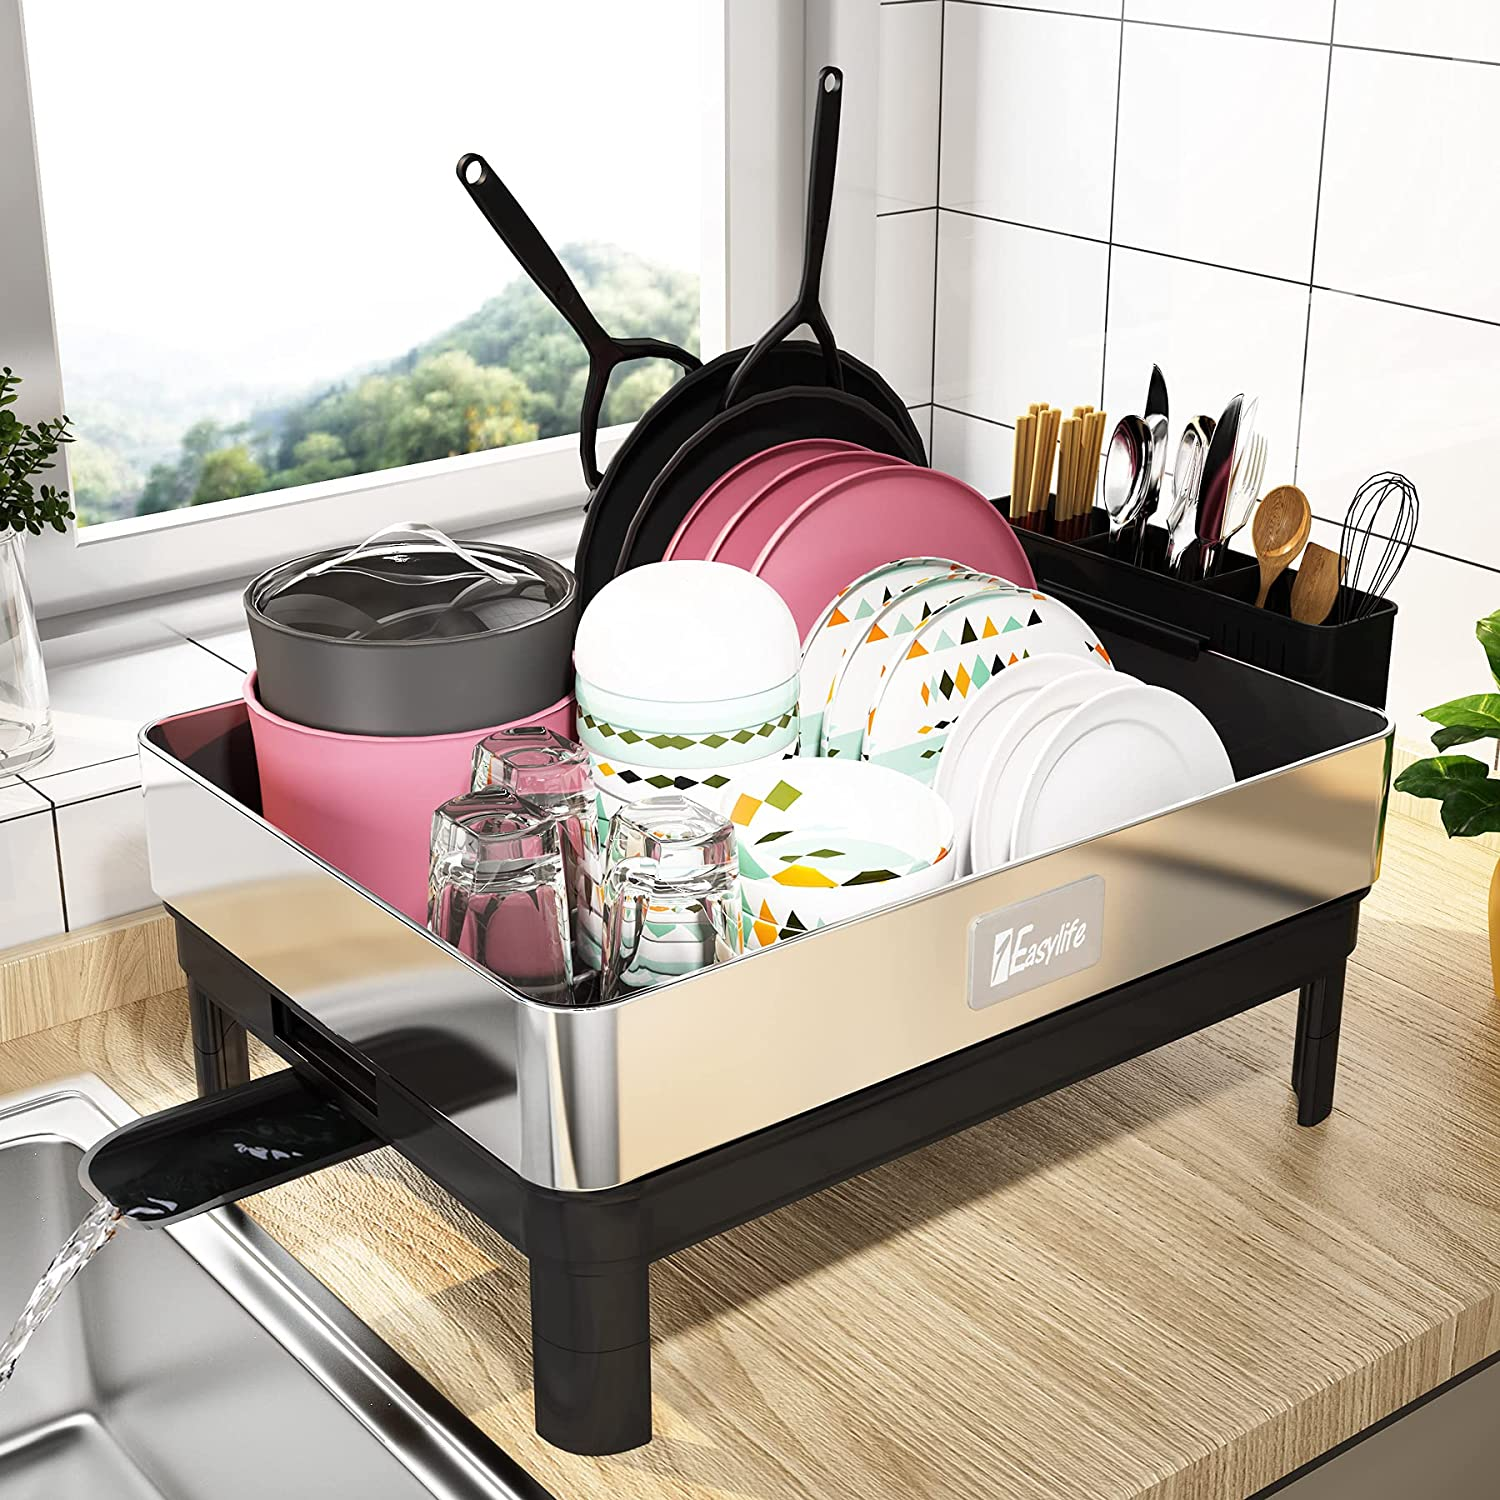 Buy Dish Drying Rack 1easylife Large Dish Rack Drainboard Set With Fingerprint Proof Frame 304 Stainless Steel Drying Rack With Swivel Spout Utensil Holder Dish Drainer For Kitchen Counter Storage Online In Indonesia